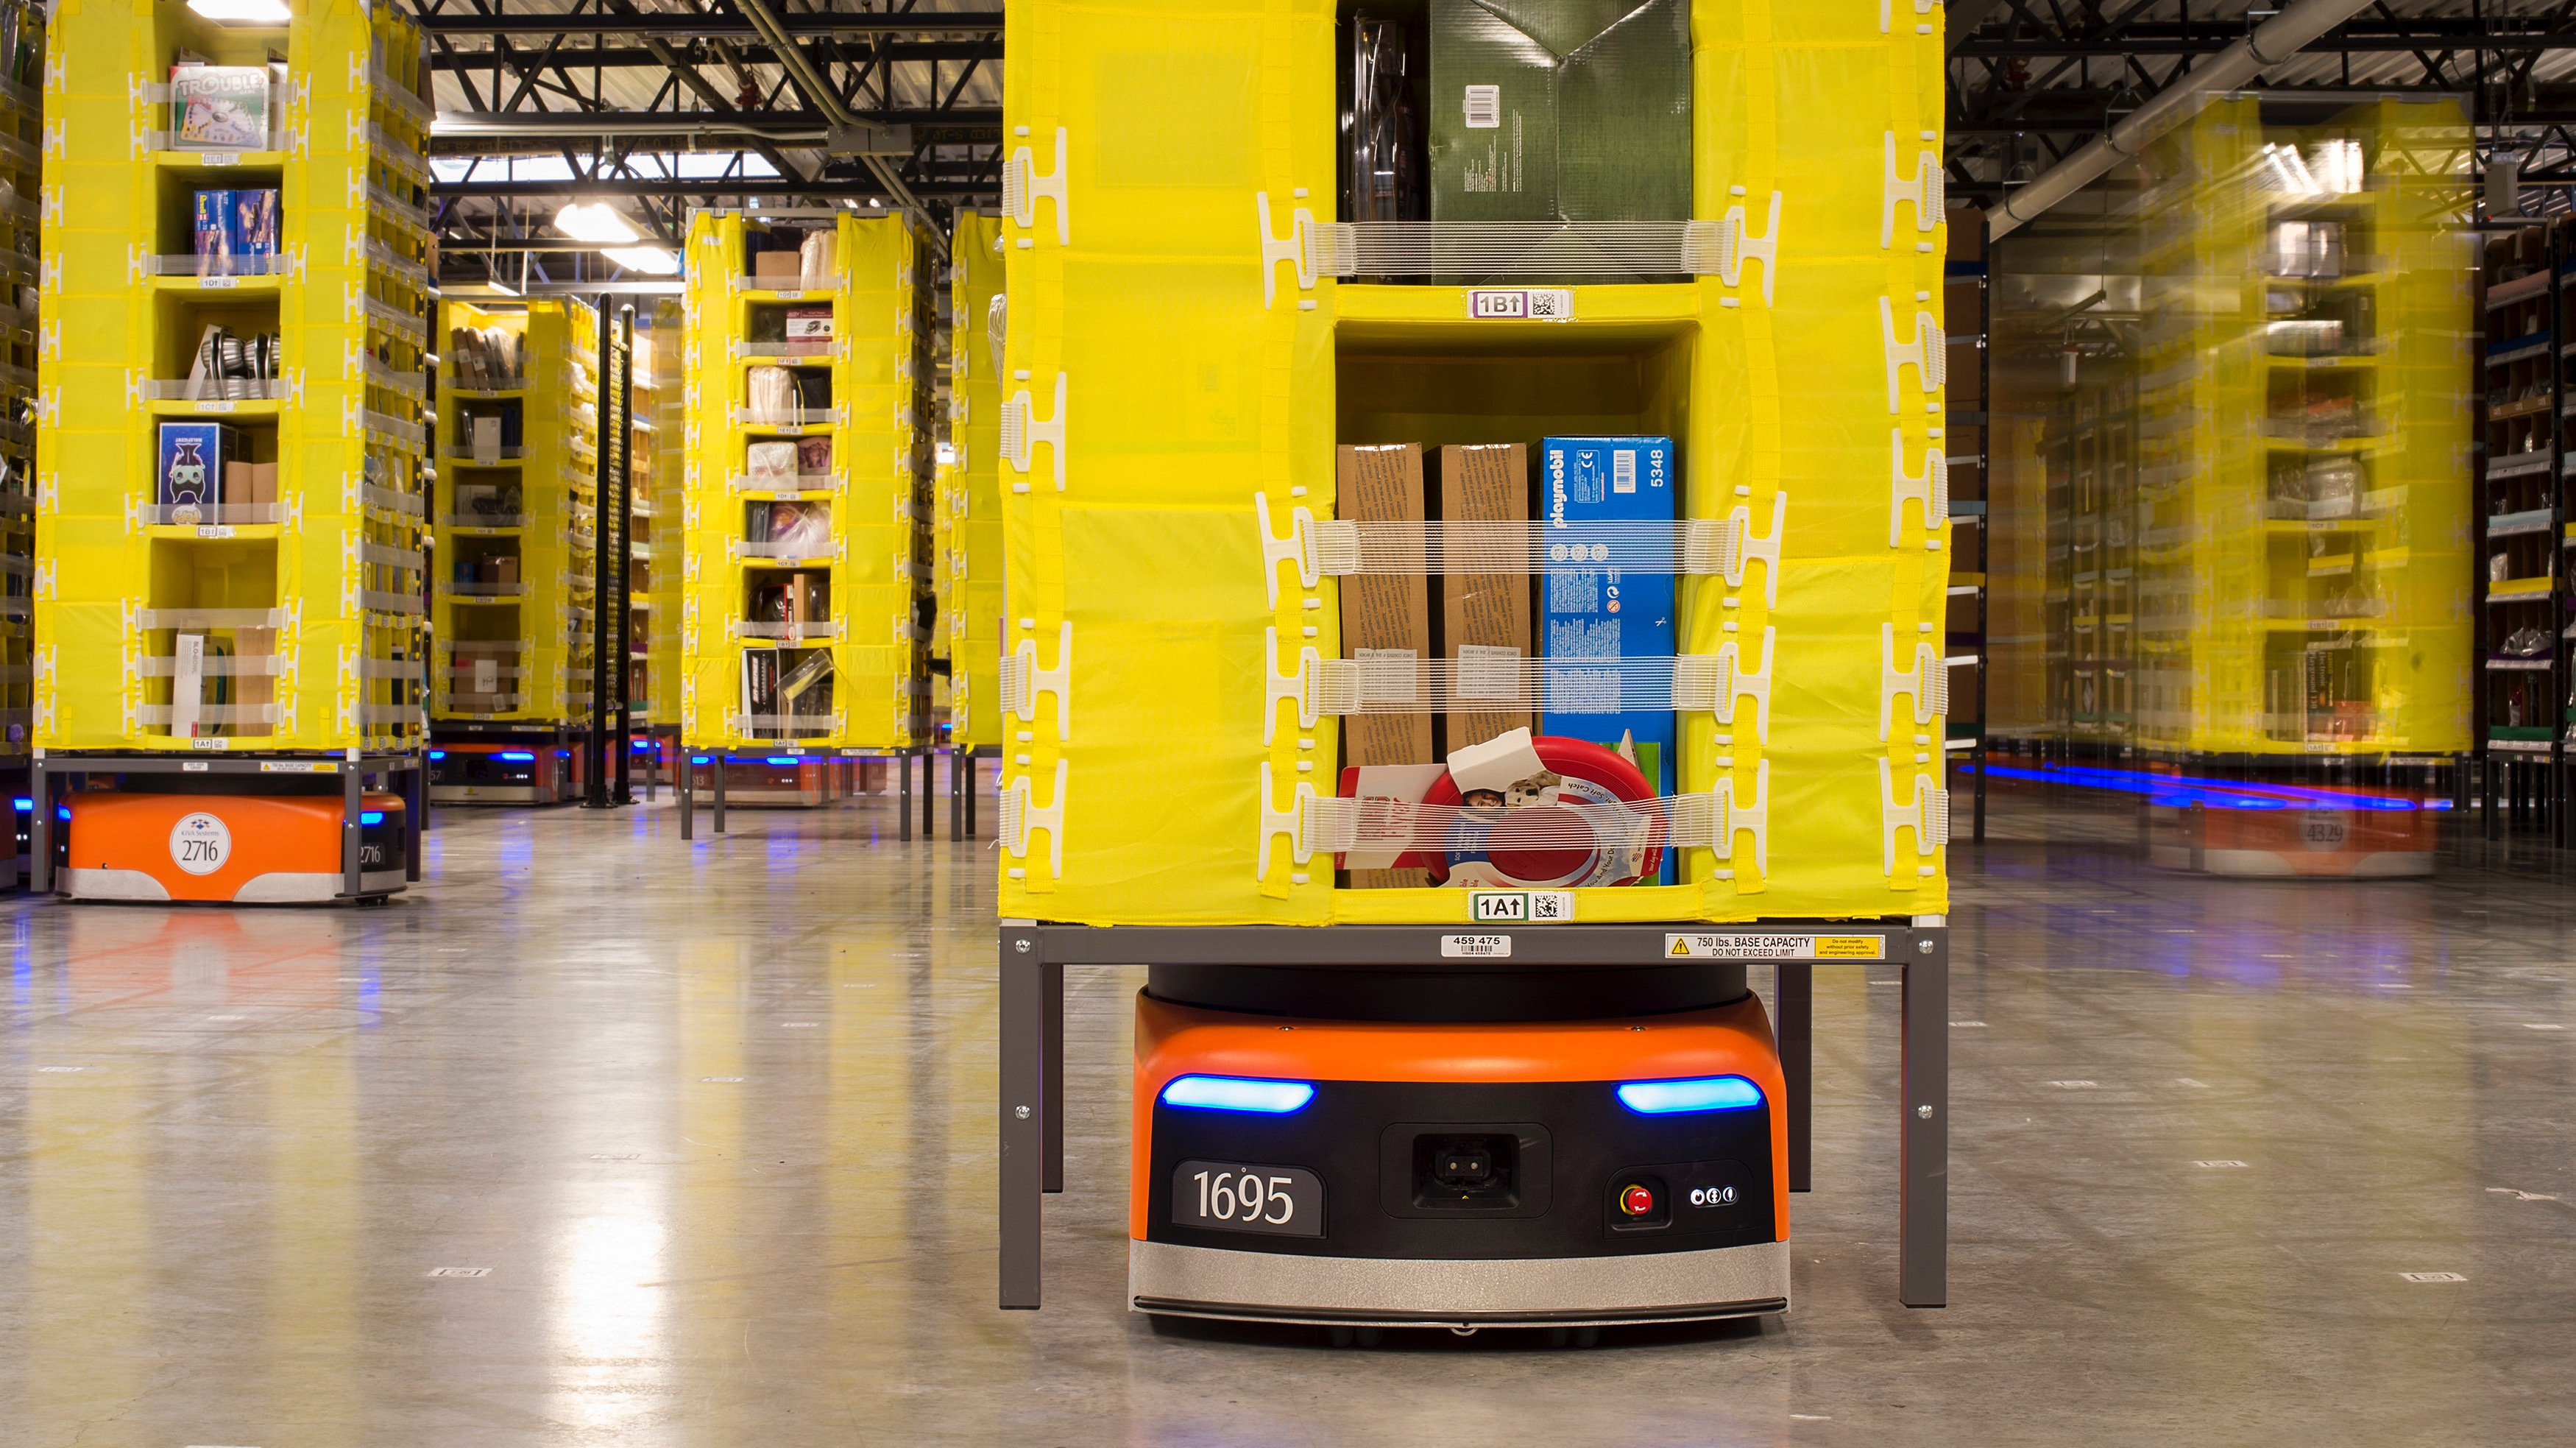 Amazon (AMZN) is just beginning to use robots in its